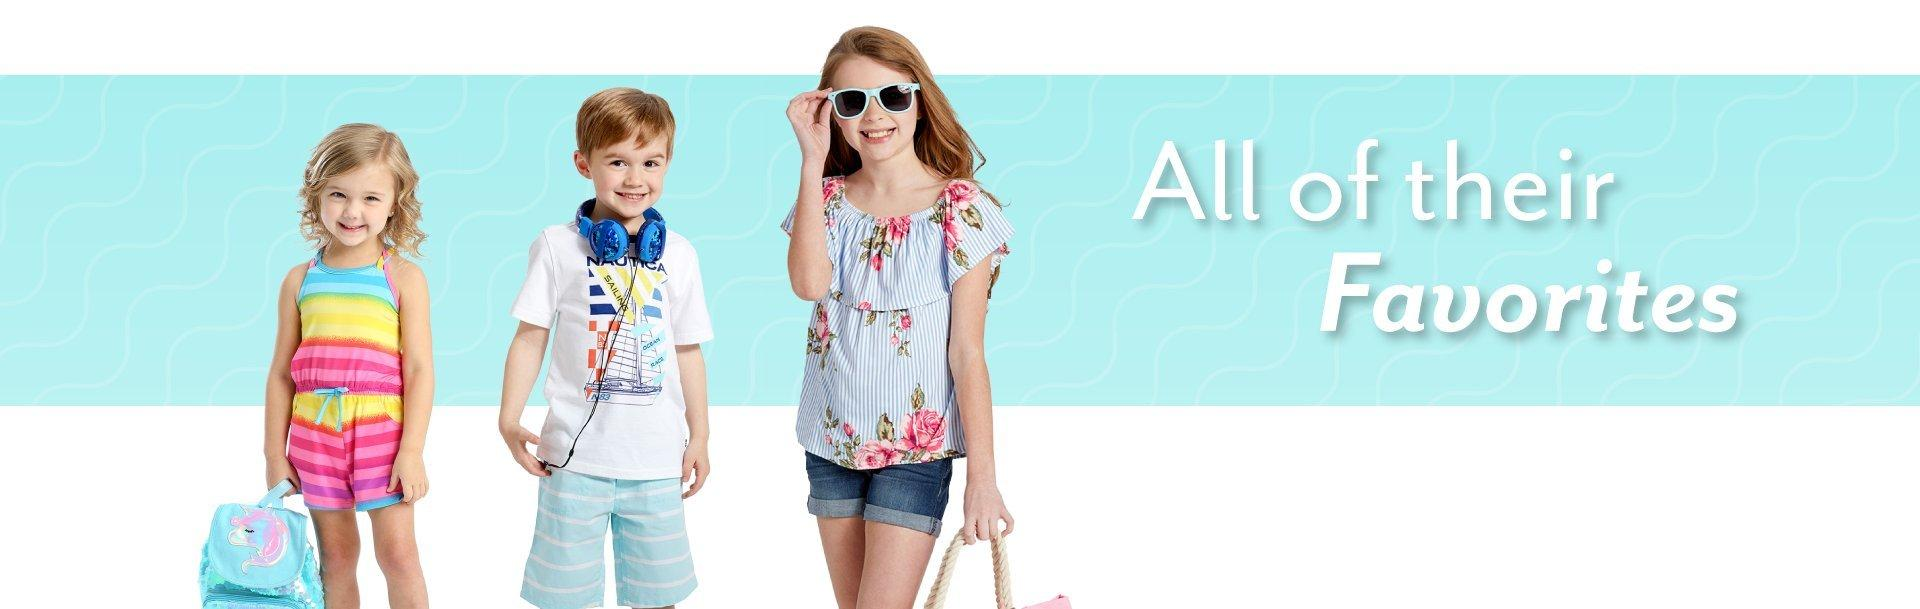 12c9f1755 Kids' Clothes, Baby Clothes, Toys | Burkes Outlet